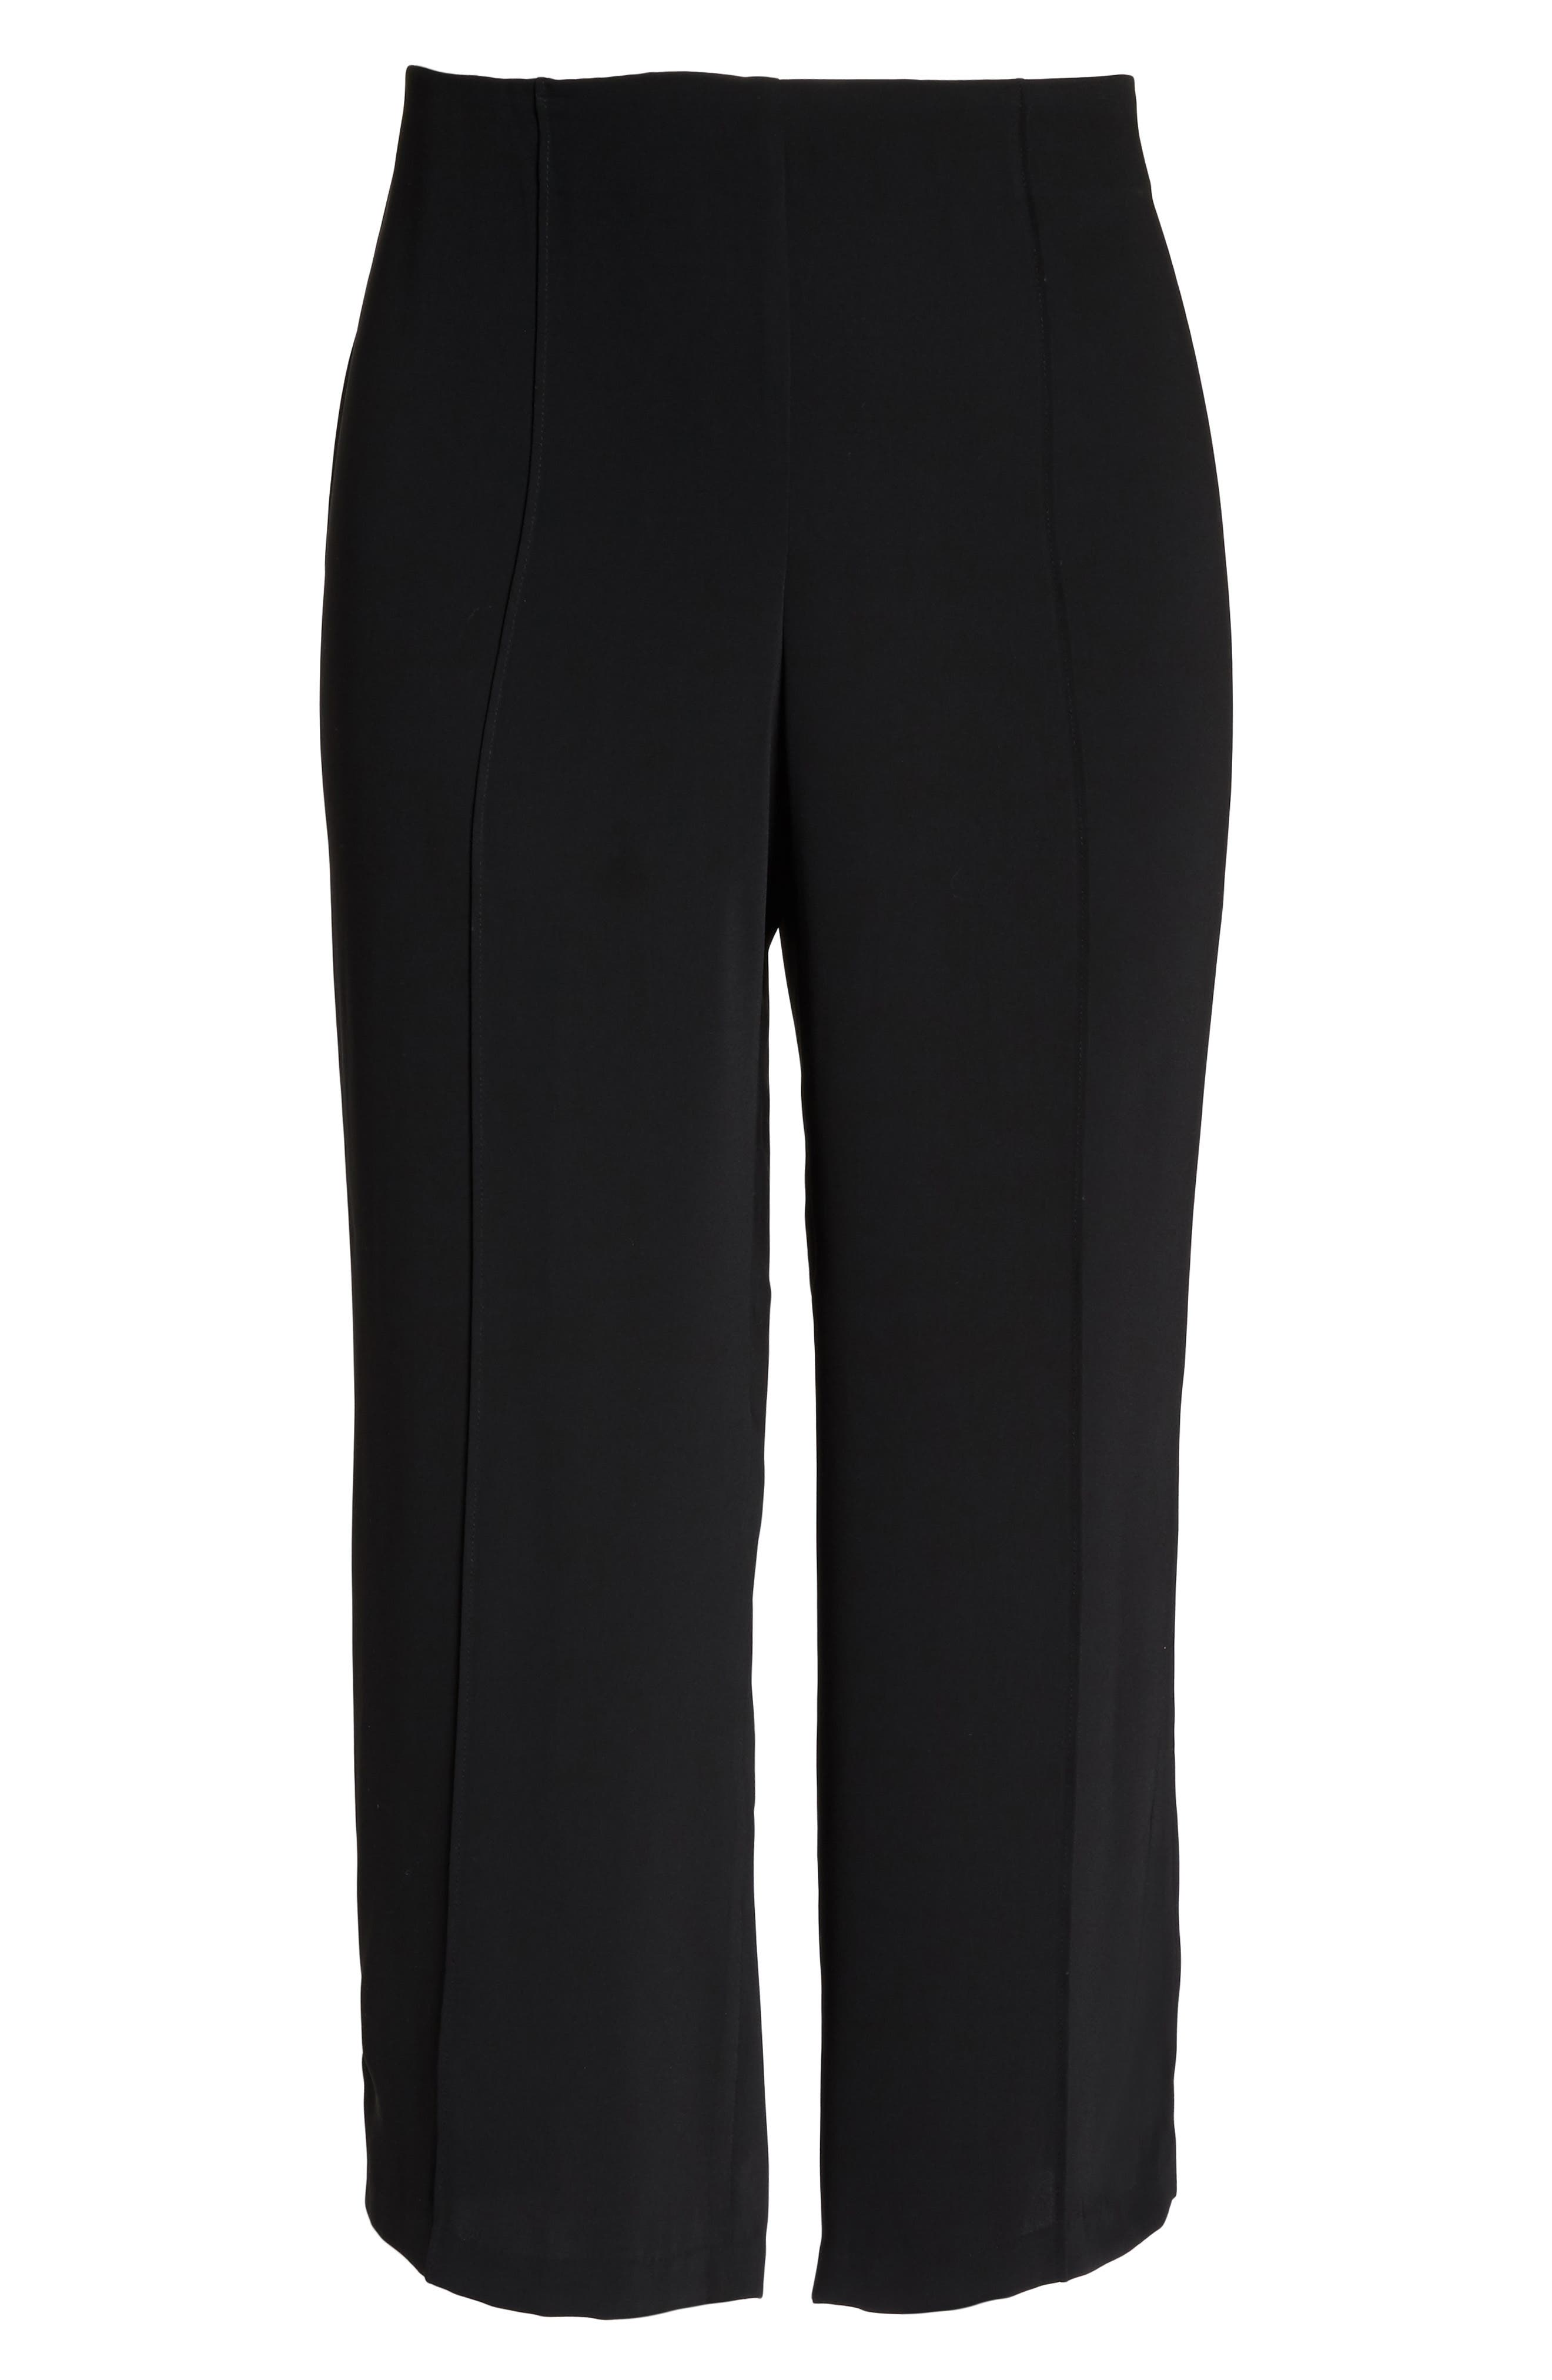 Wide Leg Ankle Pants,                             Alternate thumbnail 6, color,                             Black